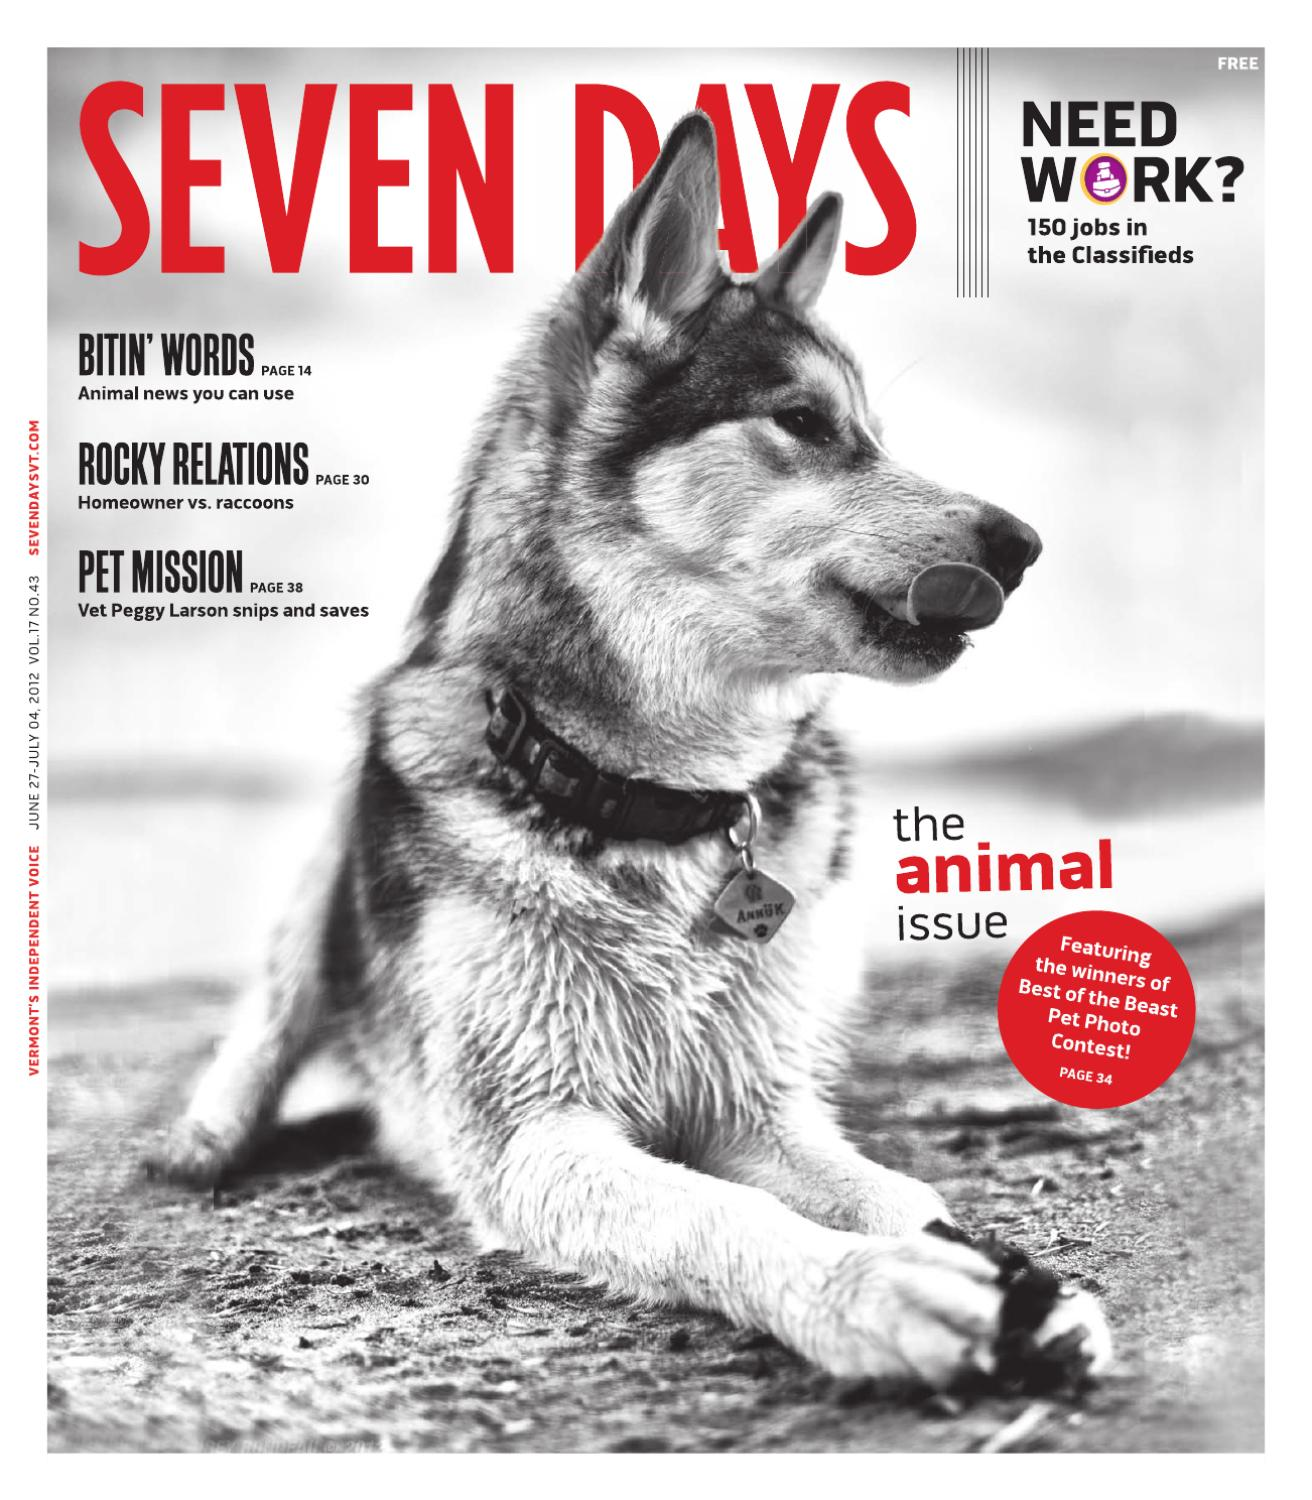 seven days the animal issue 06 27 12 by seven days issuu